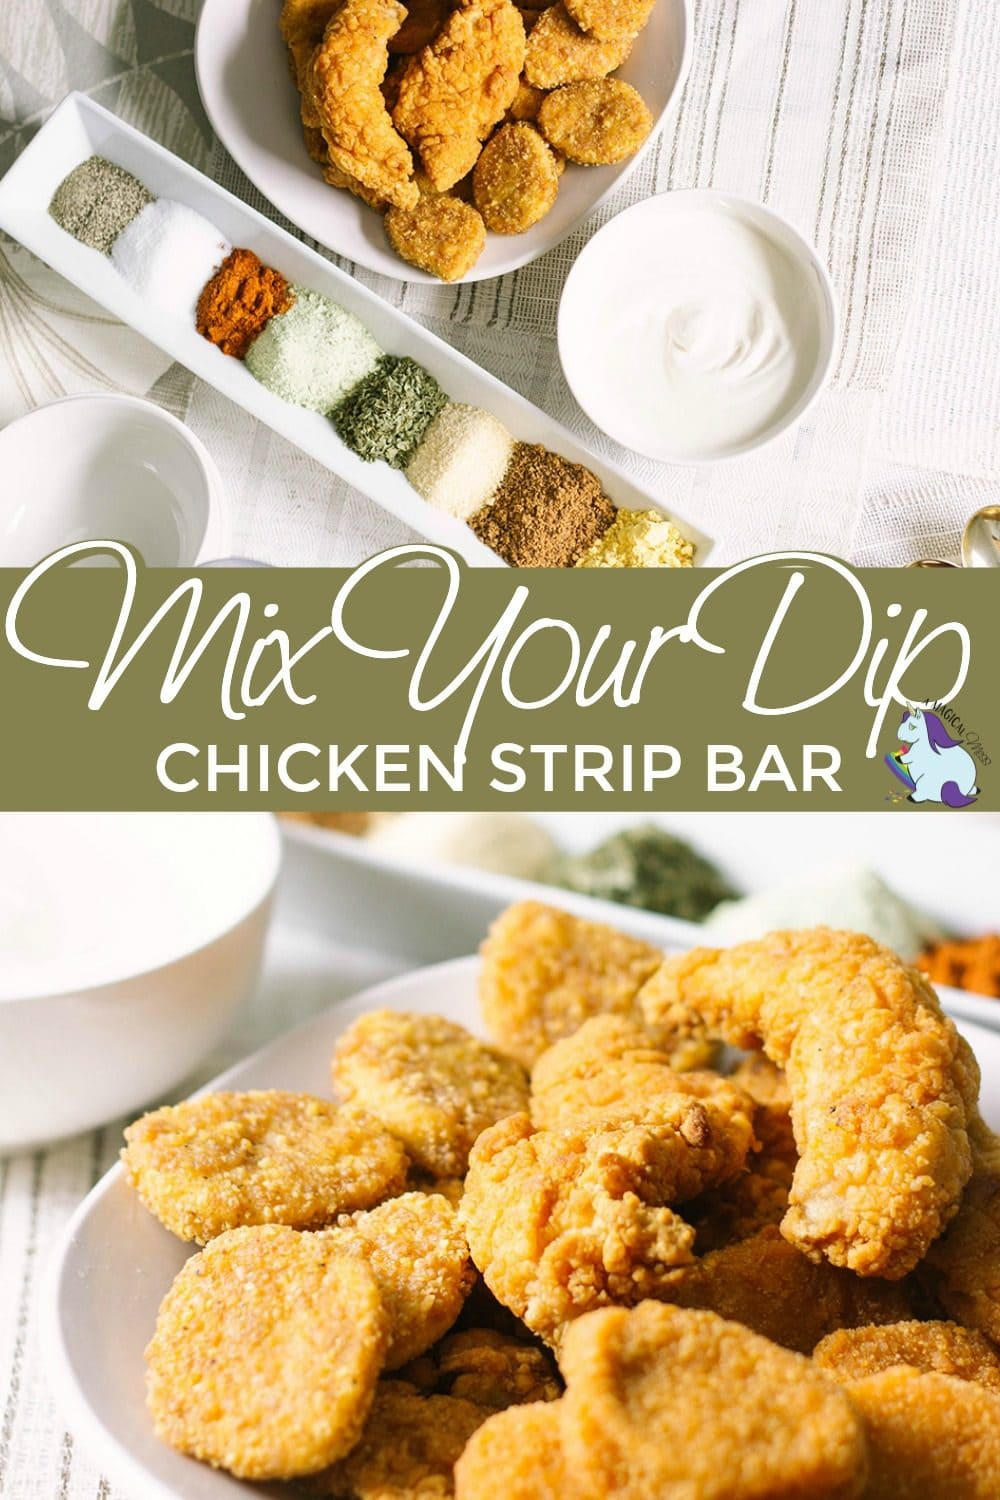 Chicken strips on a table with seasonings to mix dips.